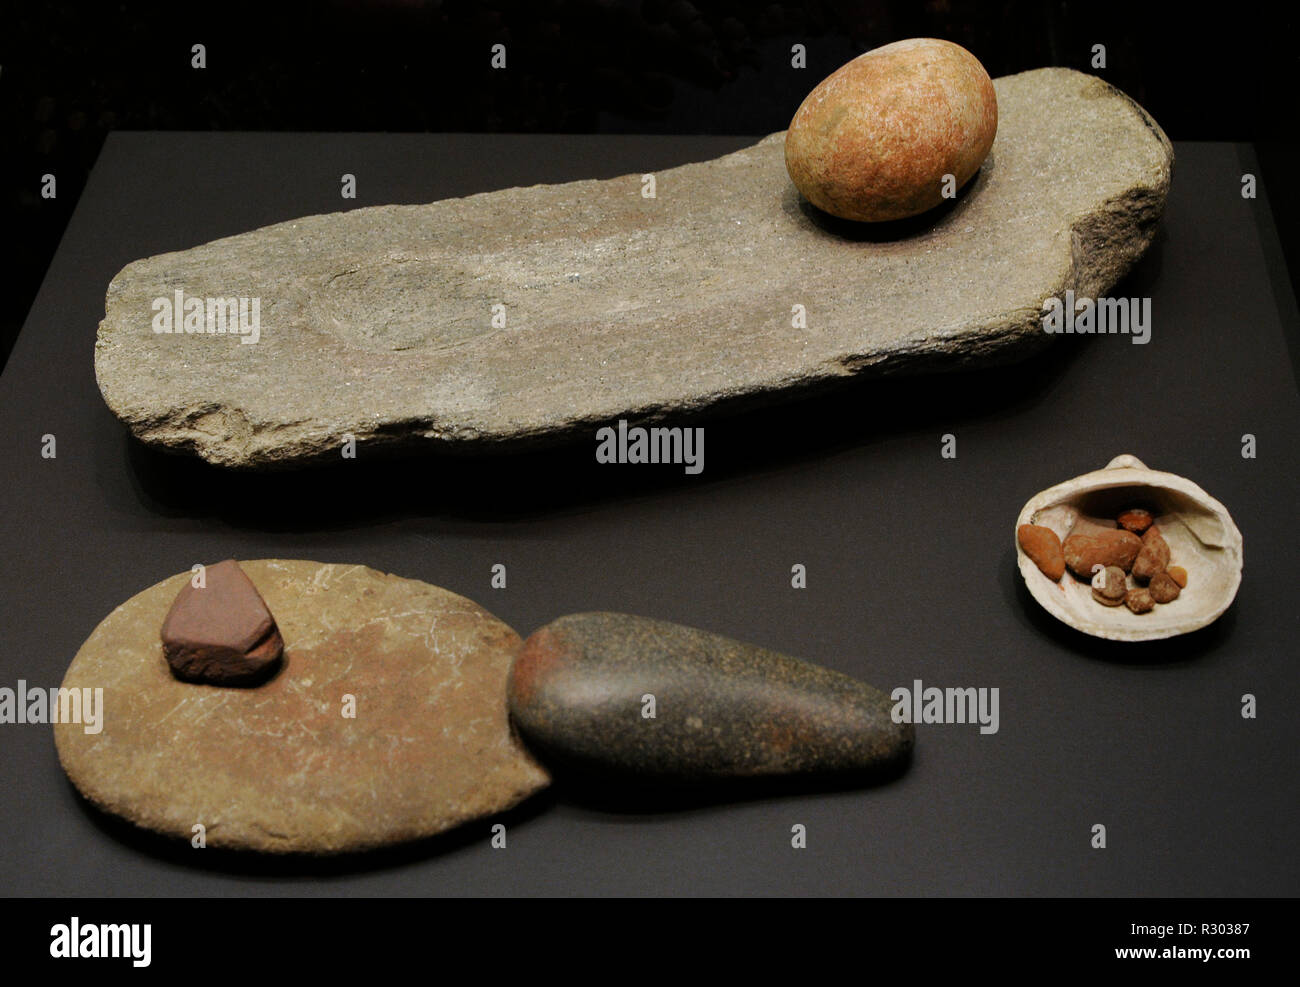 From left to right and from back to front: Grindstone. El Garcel (Antas, Almeria province, Andalusia) and El Higueron Cave (Rincon de la Victoria, Malaga province, Andalusia); Grindstone, pestle and dye. El Higueron Cave (Rincon de la Victoria, Malaga province, Andalusia) and Ochre pot with traces of dye. La Encantada (Almanzora Caves, Almeria province, Andalusia). National Archaeological Museum. Madrid. Spain. - Stock Image